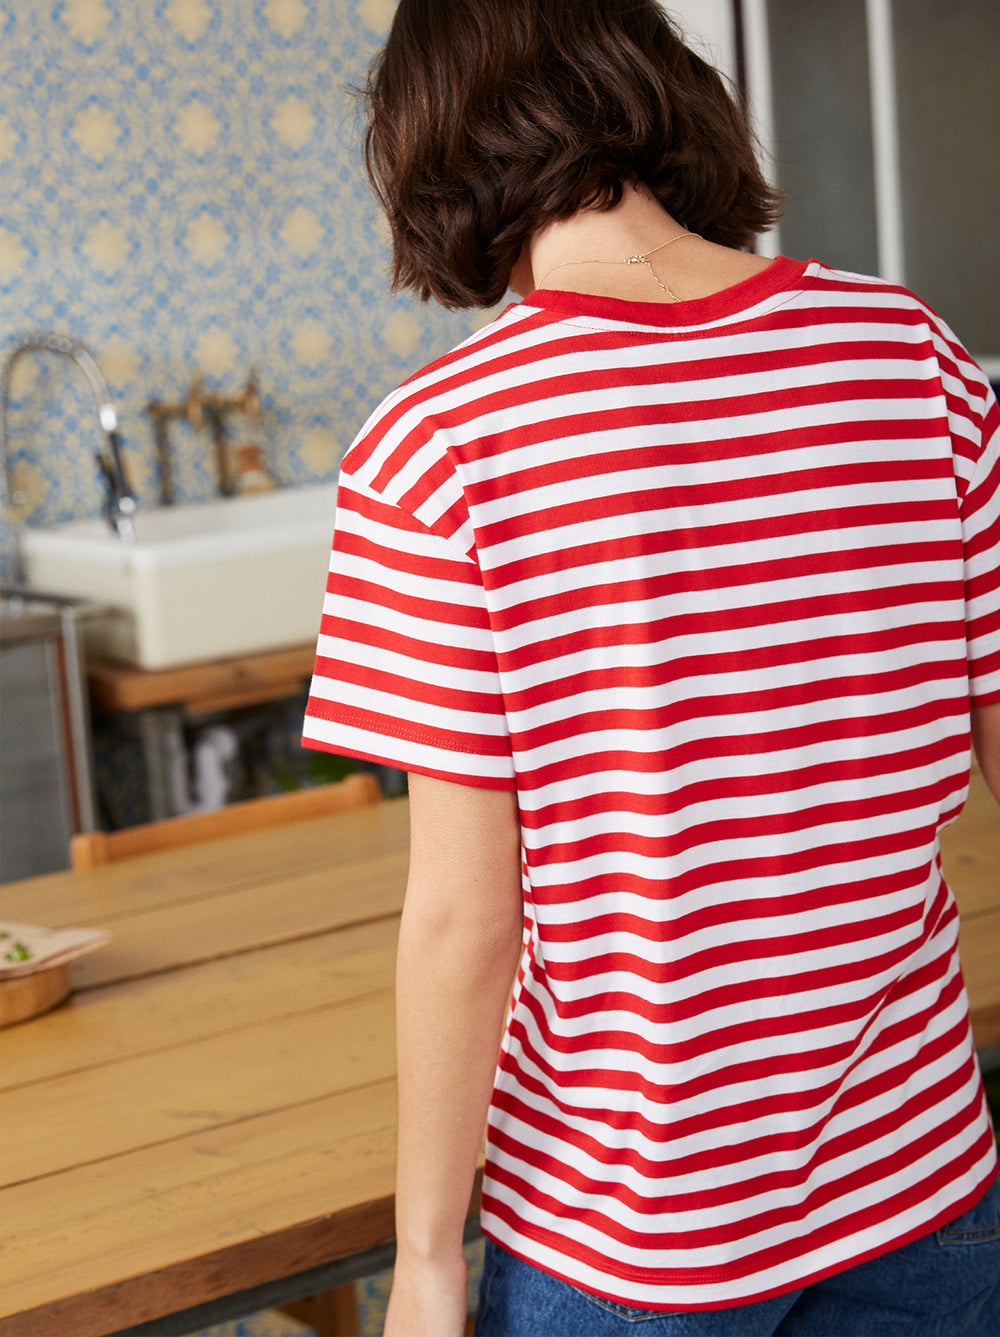 Tutta Frutta Red Striped Cotton Short Sleeve T-shirt by KITRI Studio